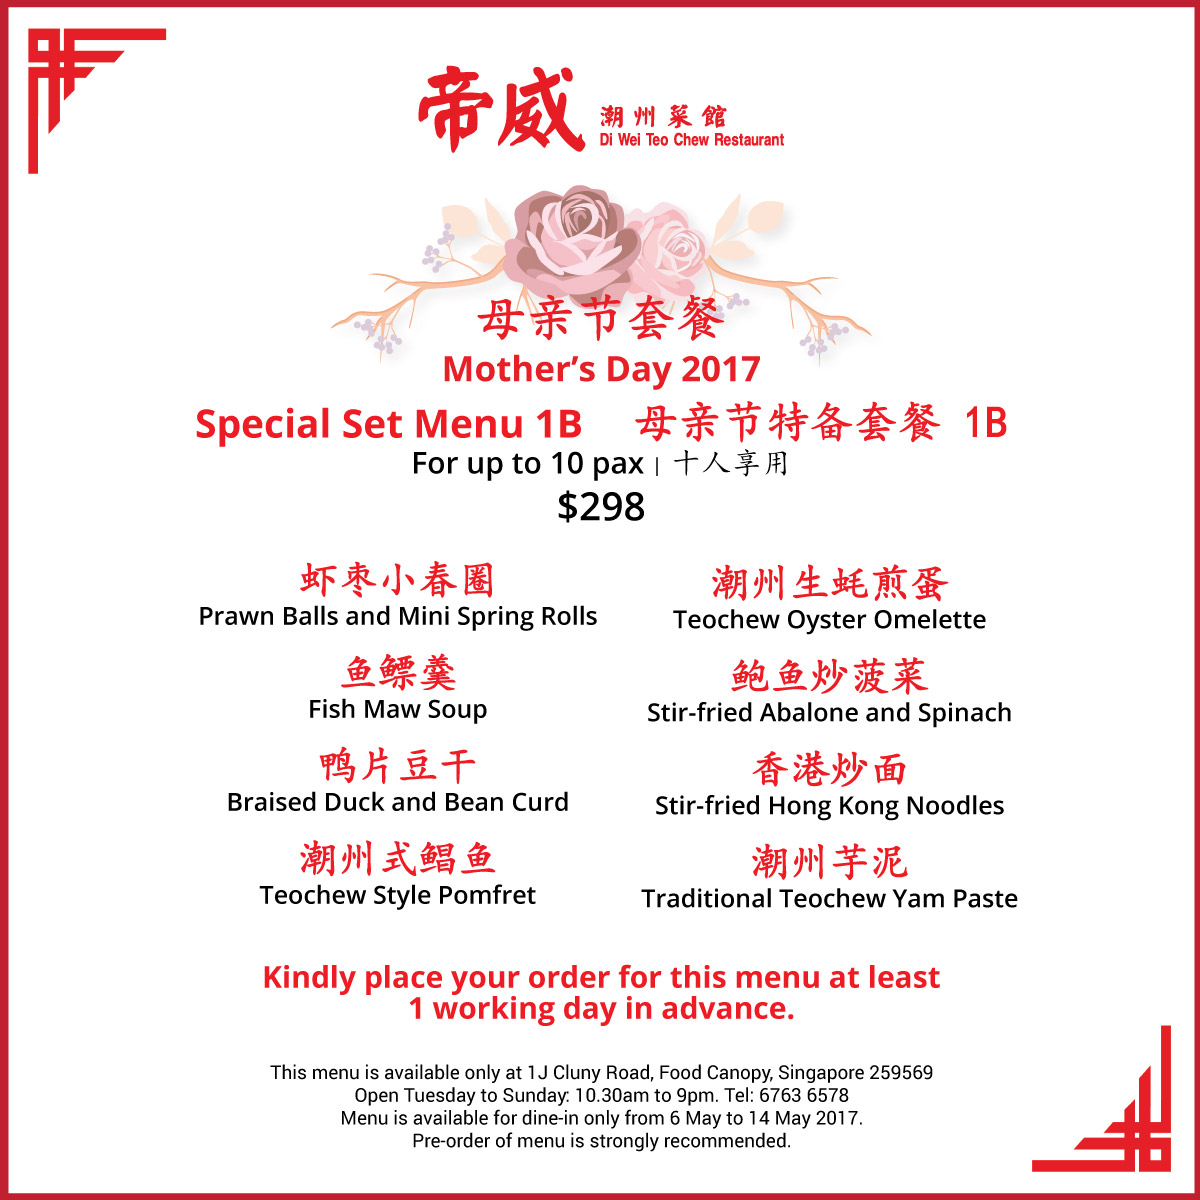 Set Menu 1B ($298) @ Food Canopy  sc 1 st  Di Wei u2013 Teo Chew Restaurant & Motheru0027s Day 2017 u2013 Di Wei